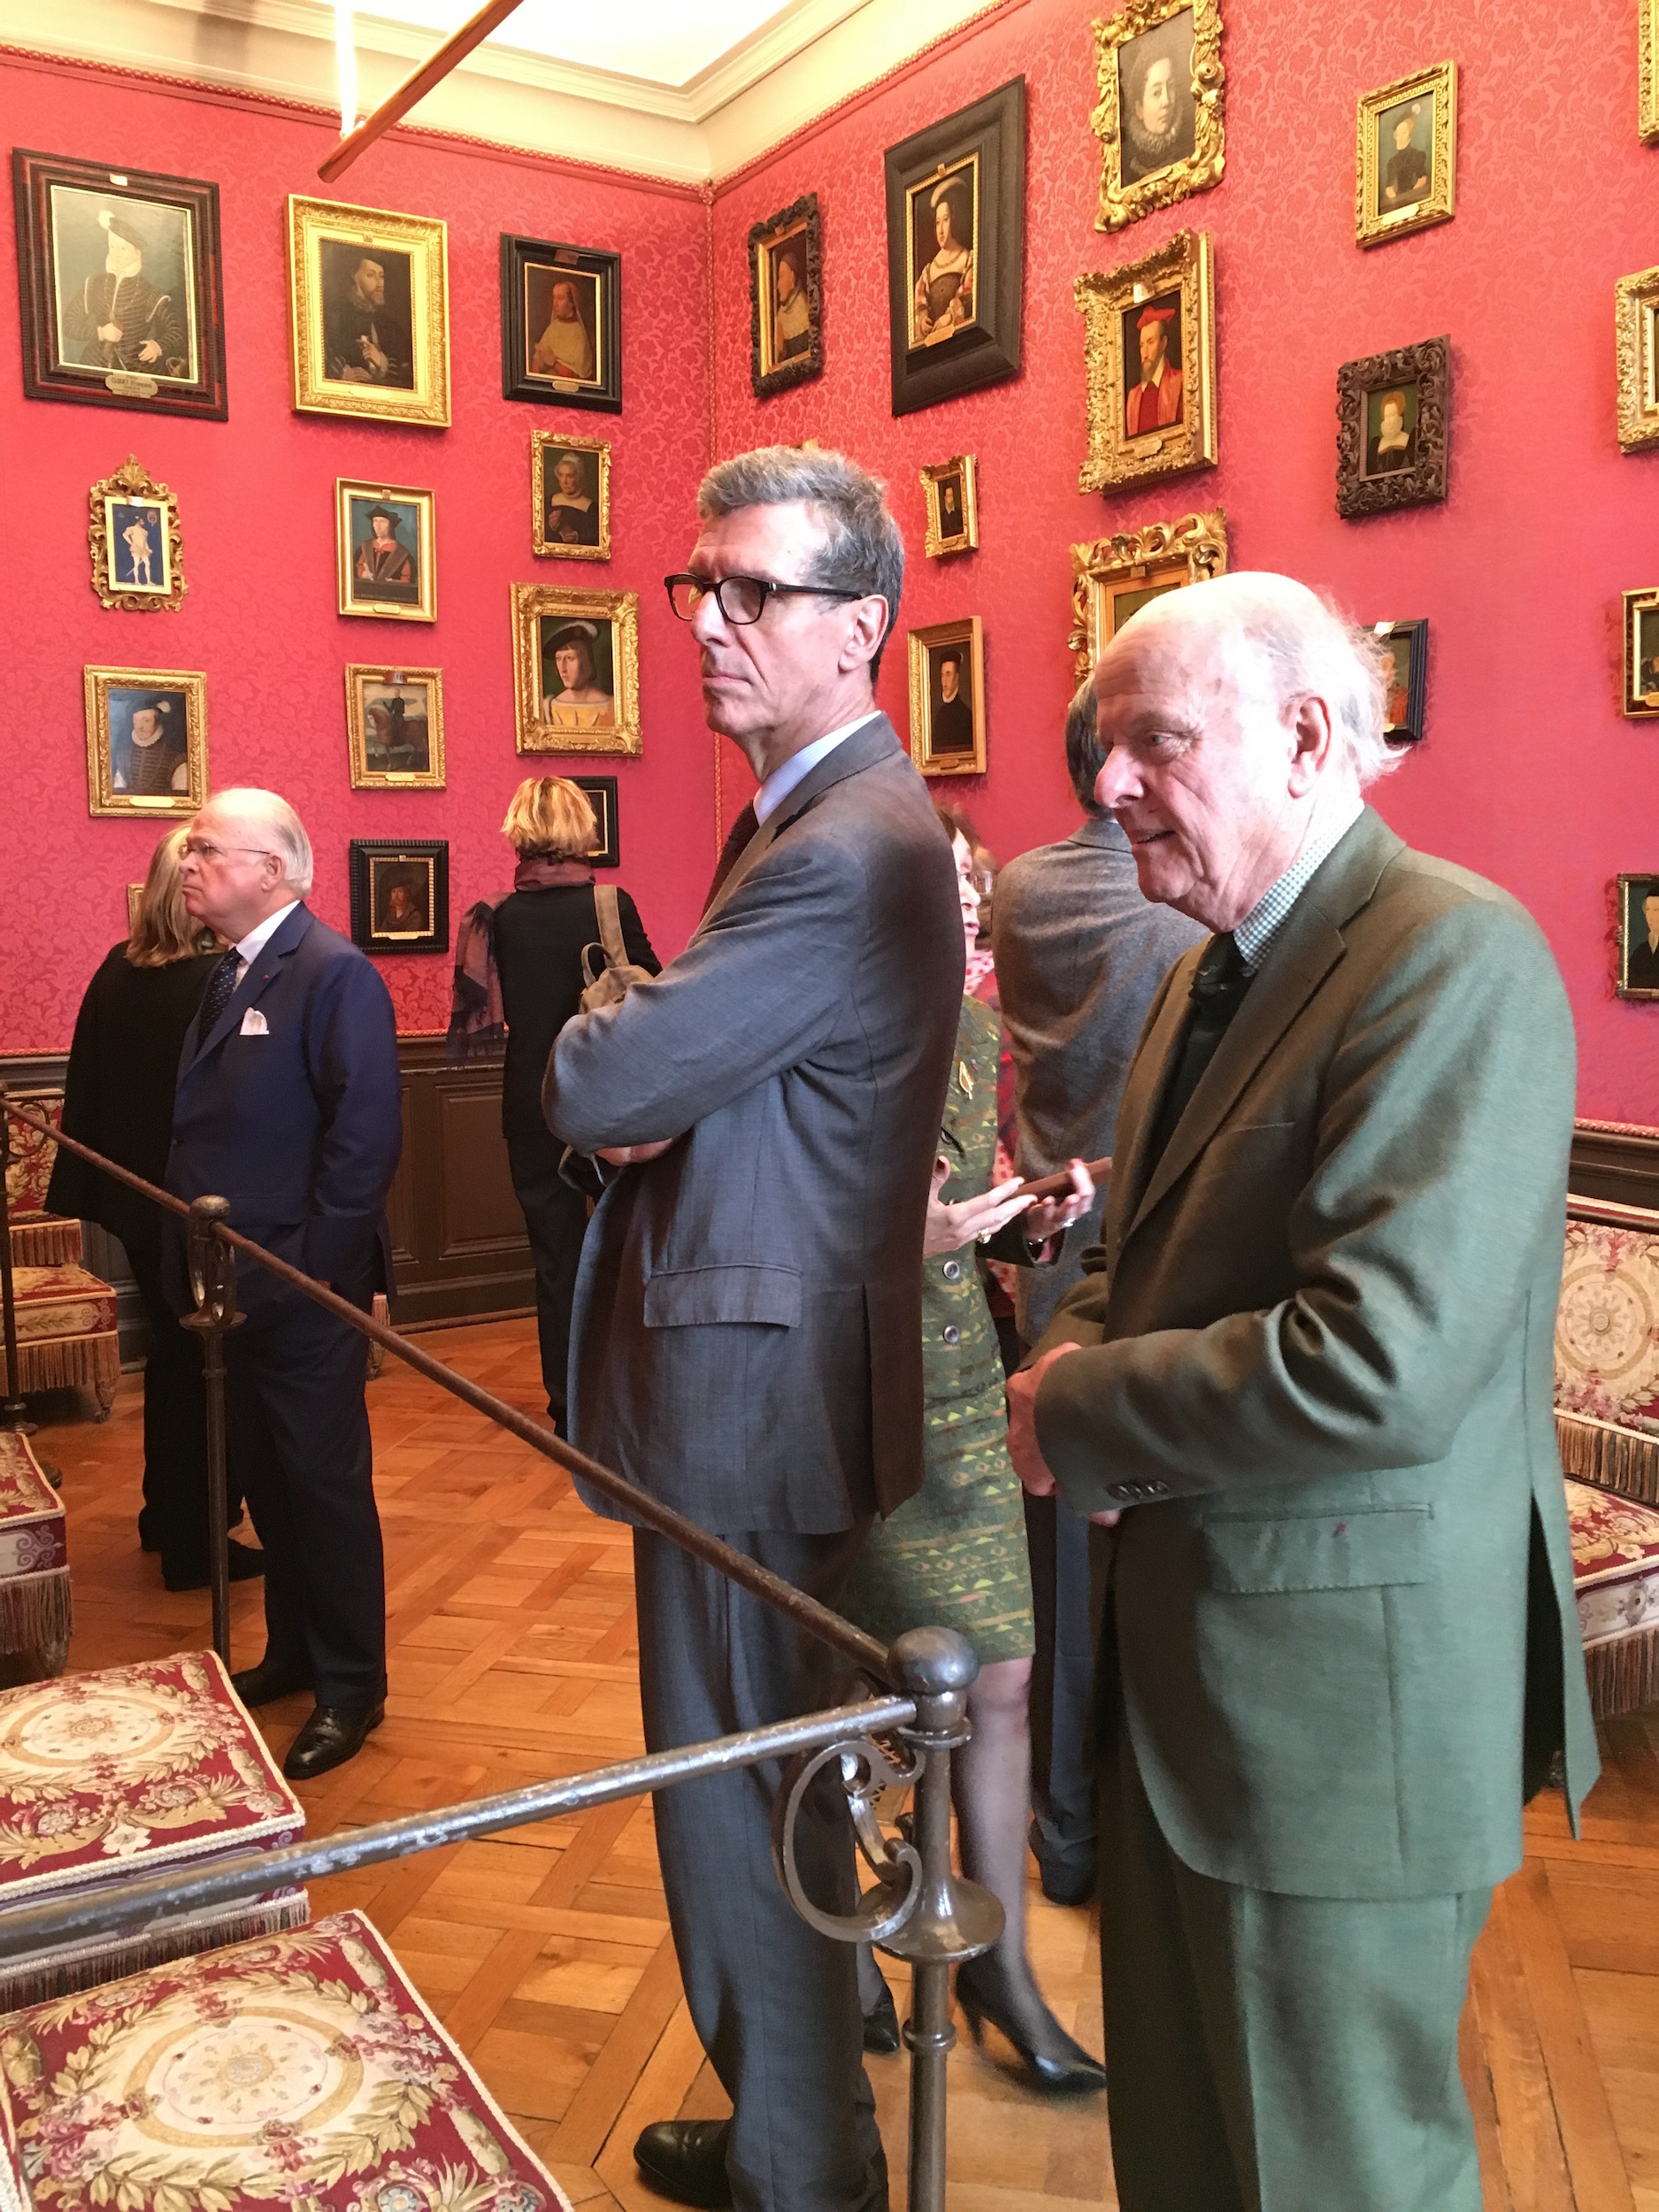 Jean Bonna, Henri Loyrette, Comte Jean de Rohan Chabot, and other guests observe 16th-century French portraits in the Clouet Room